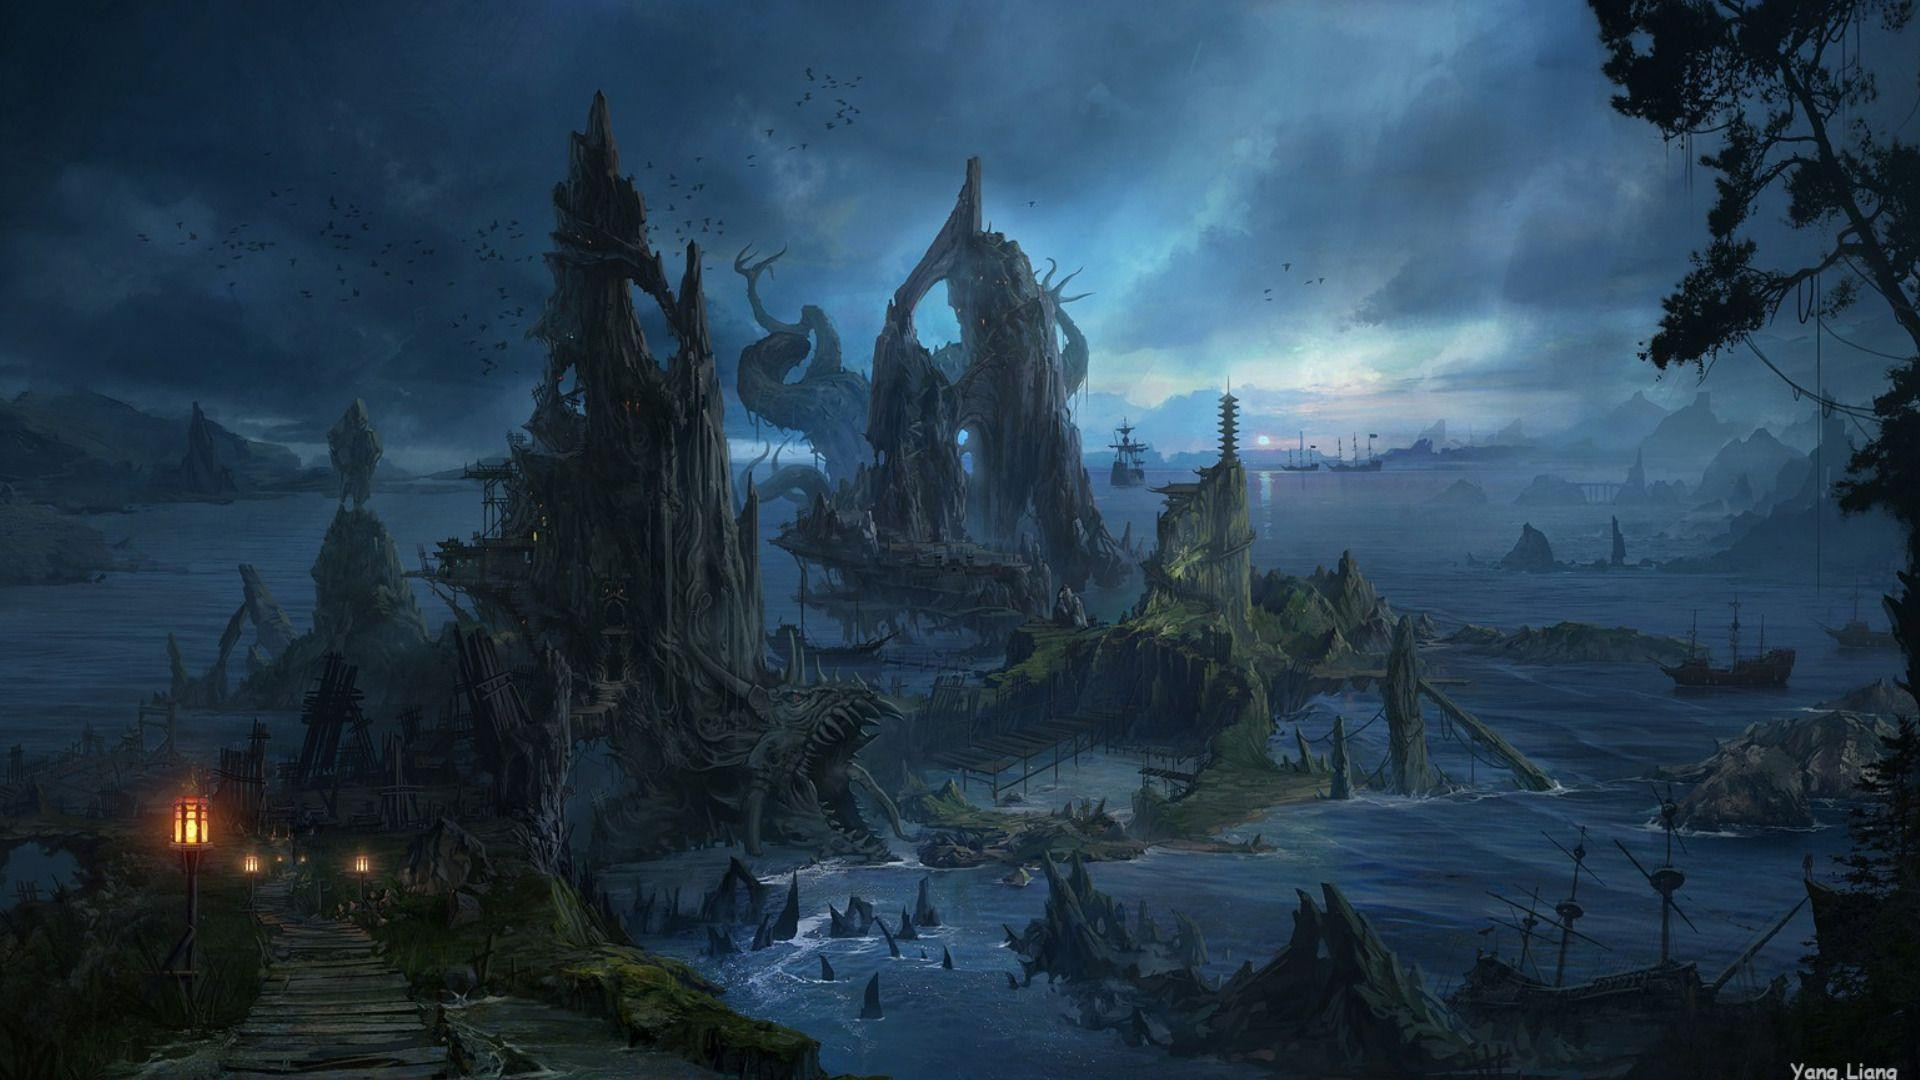 Best ideas about Fantasy Landscape Art . Save or Pin Fantasy Landscape Wallpapers Wallpaper Cave Now.